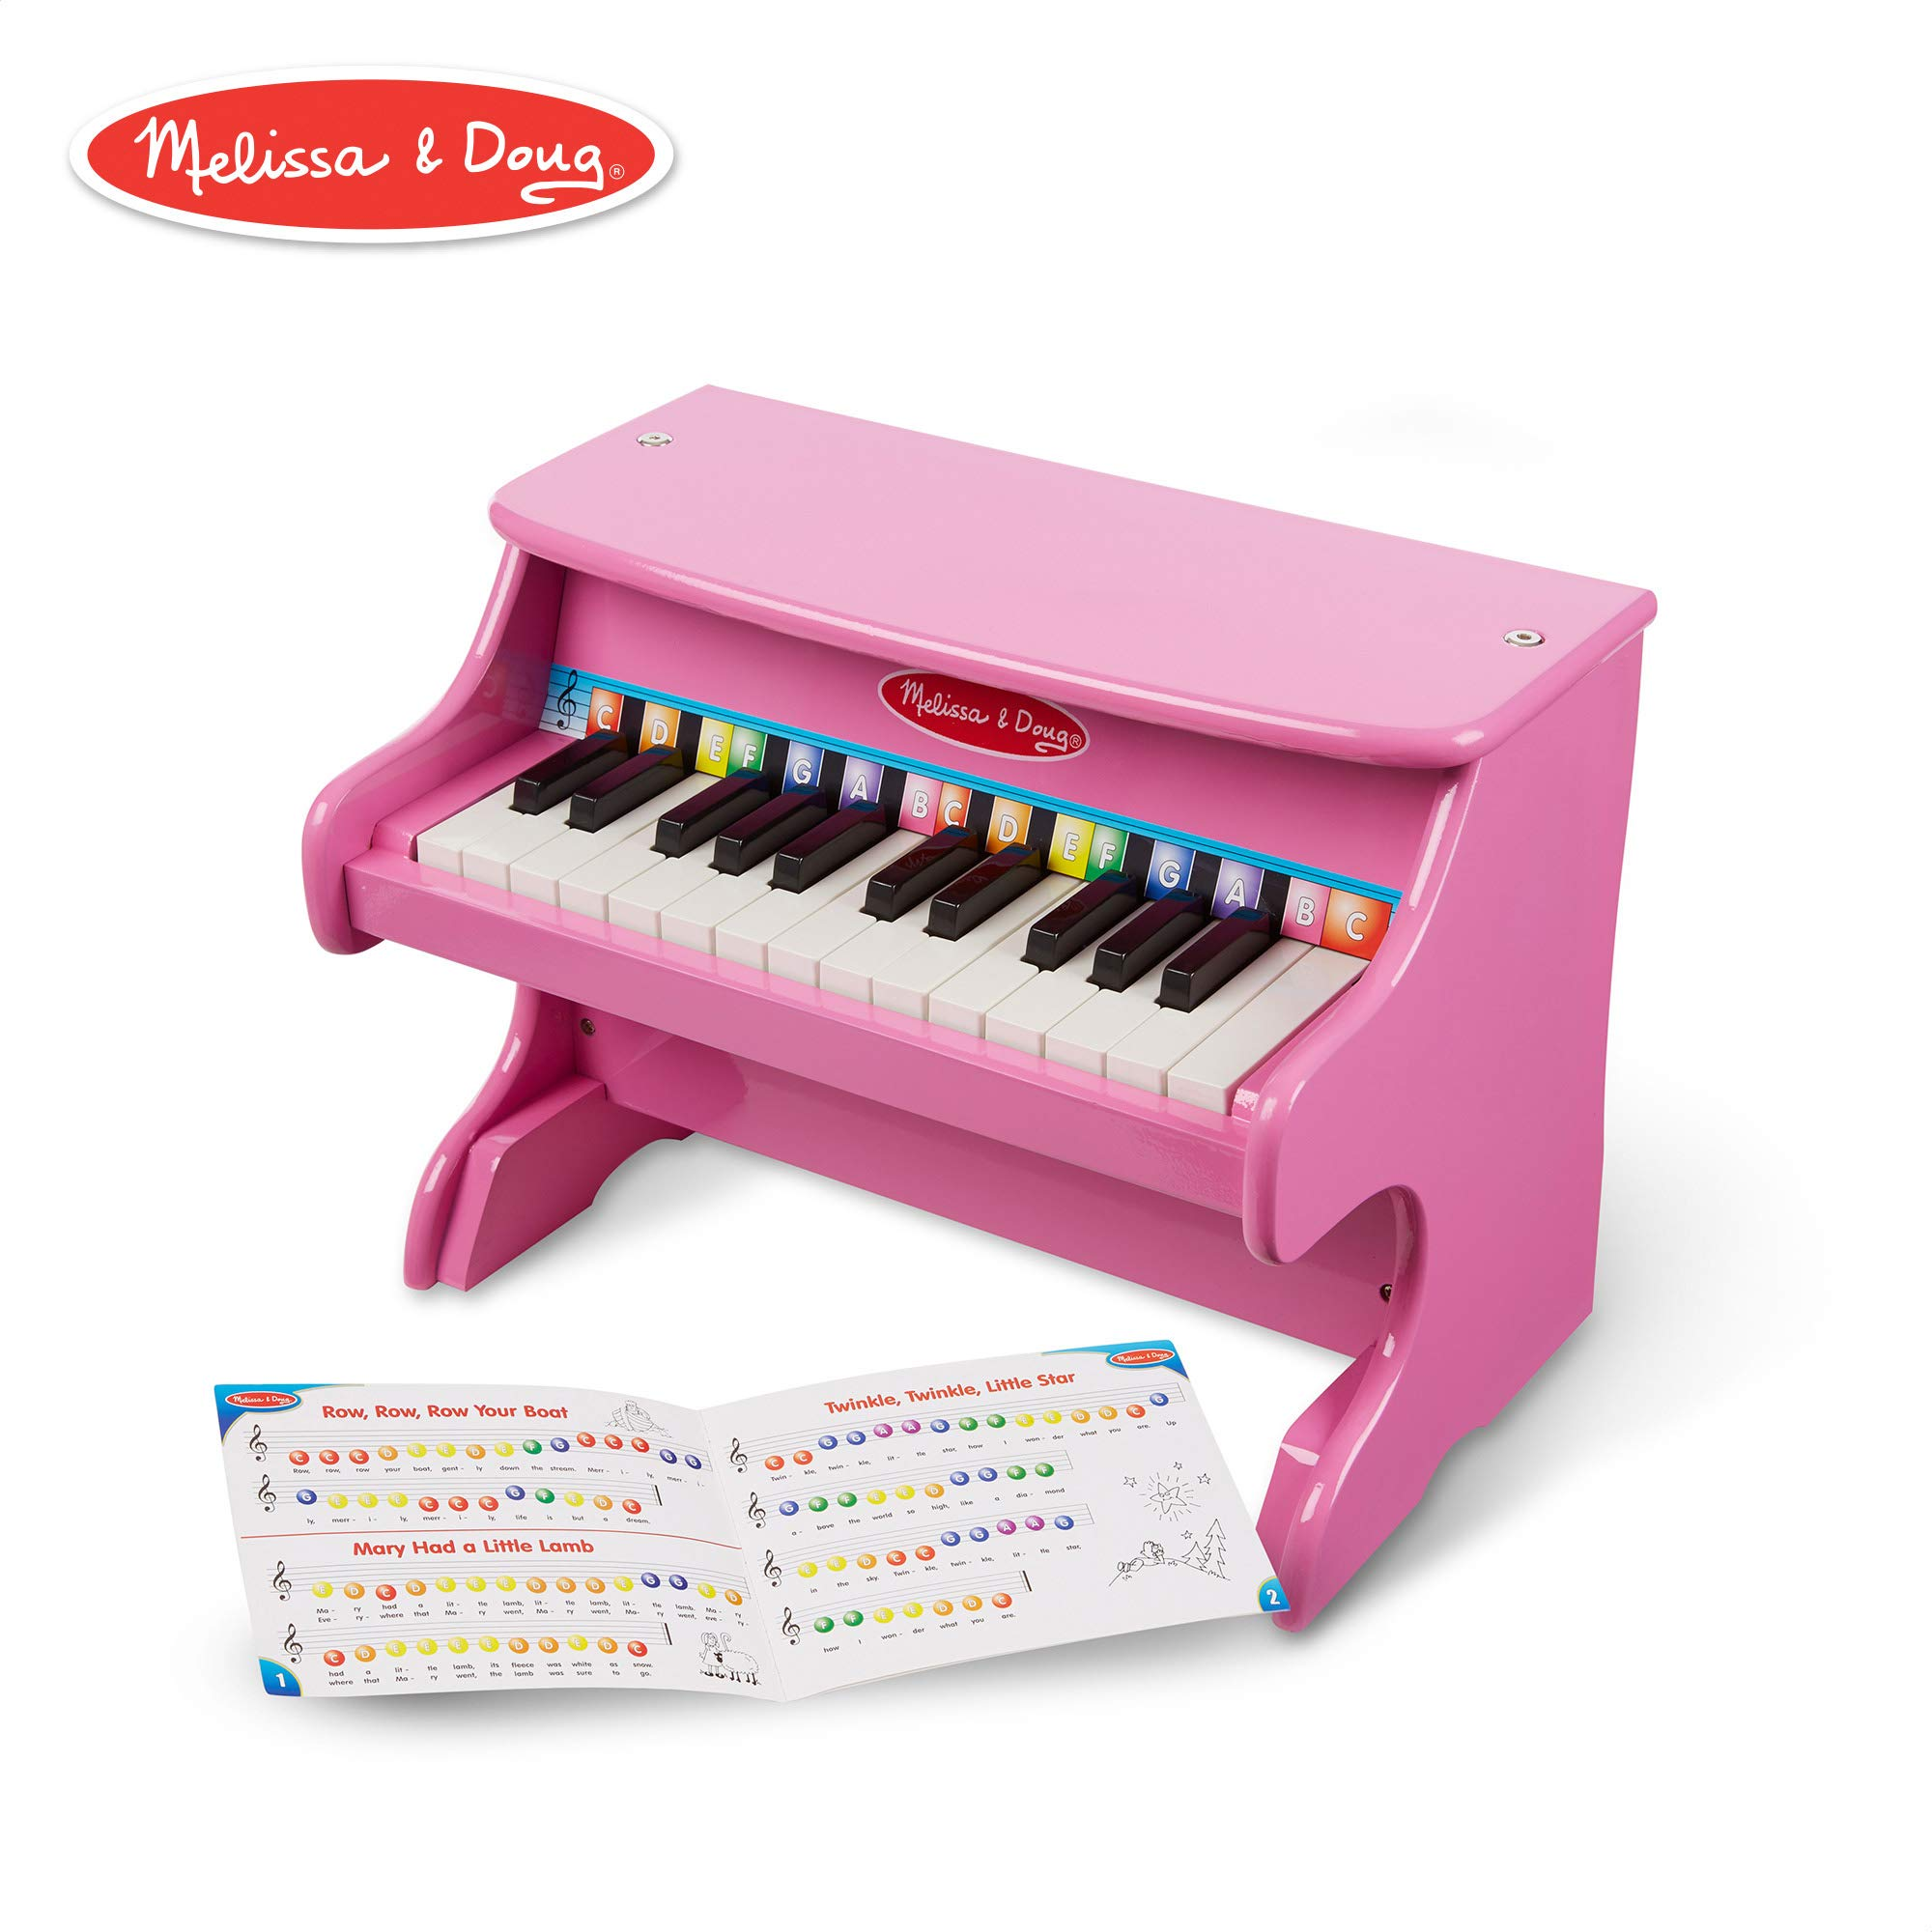 Melissa & Doug Learn-to-Play Pink Piano (25 Keys, Color-Coded Songbook) by Melissa & Doug